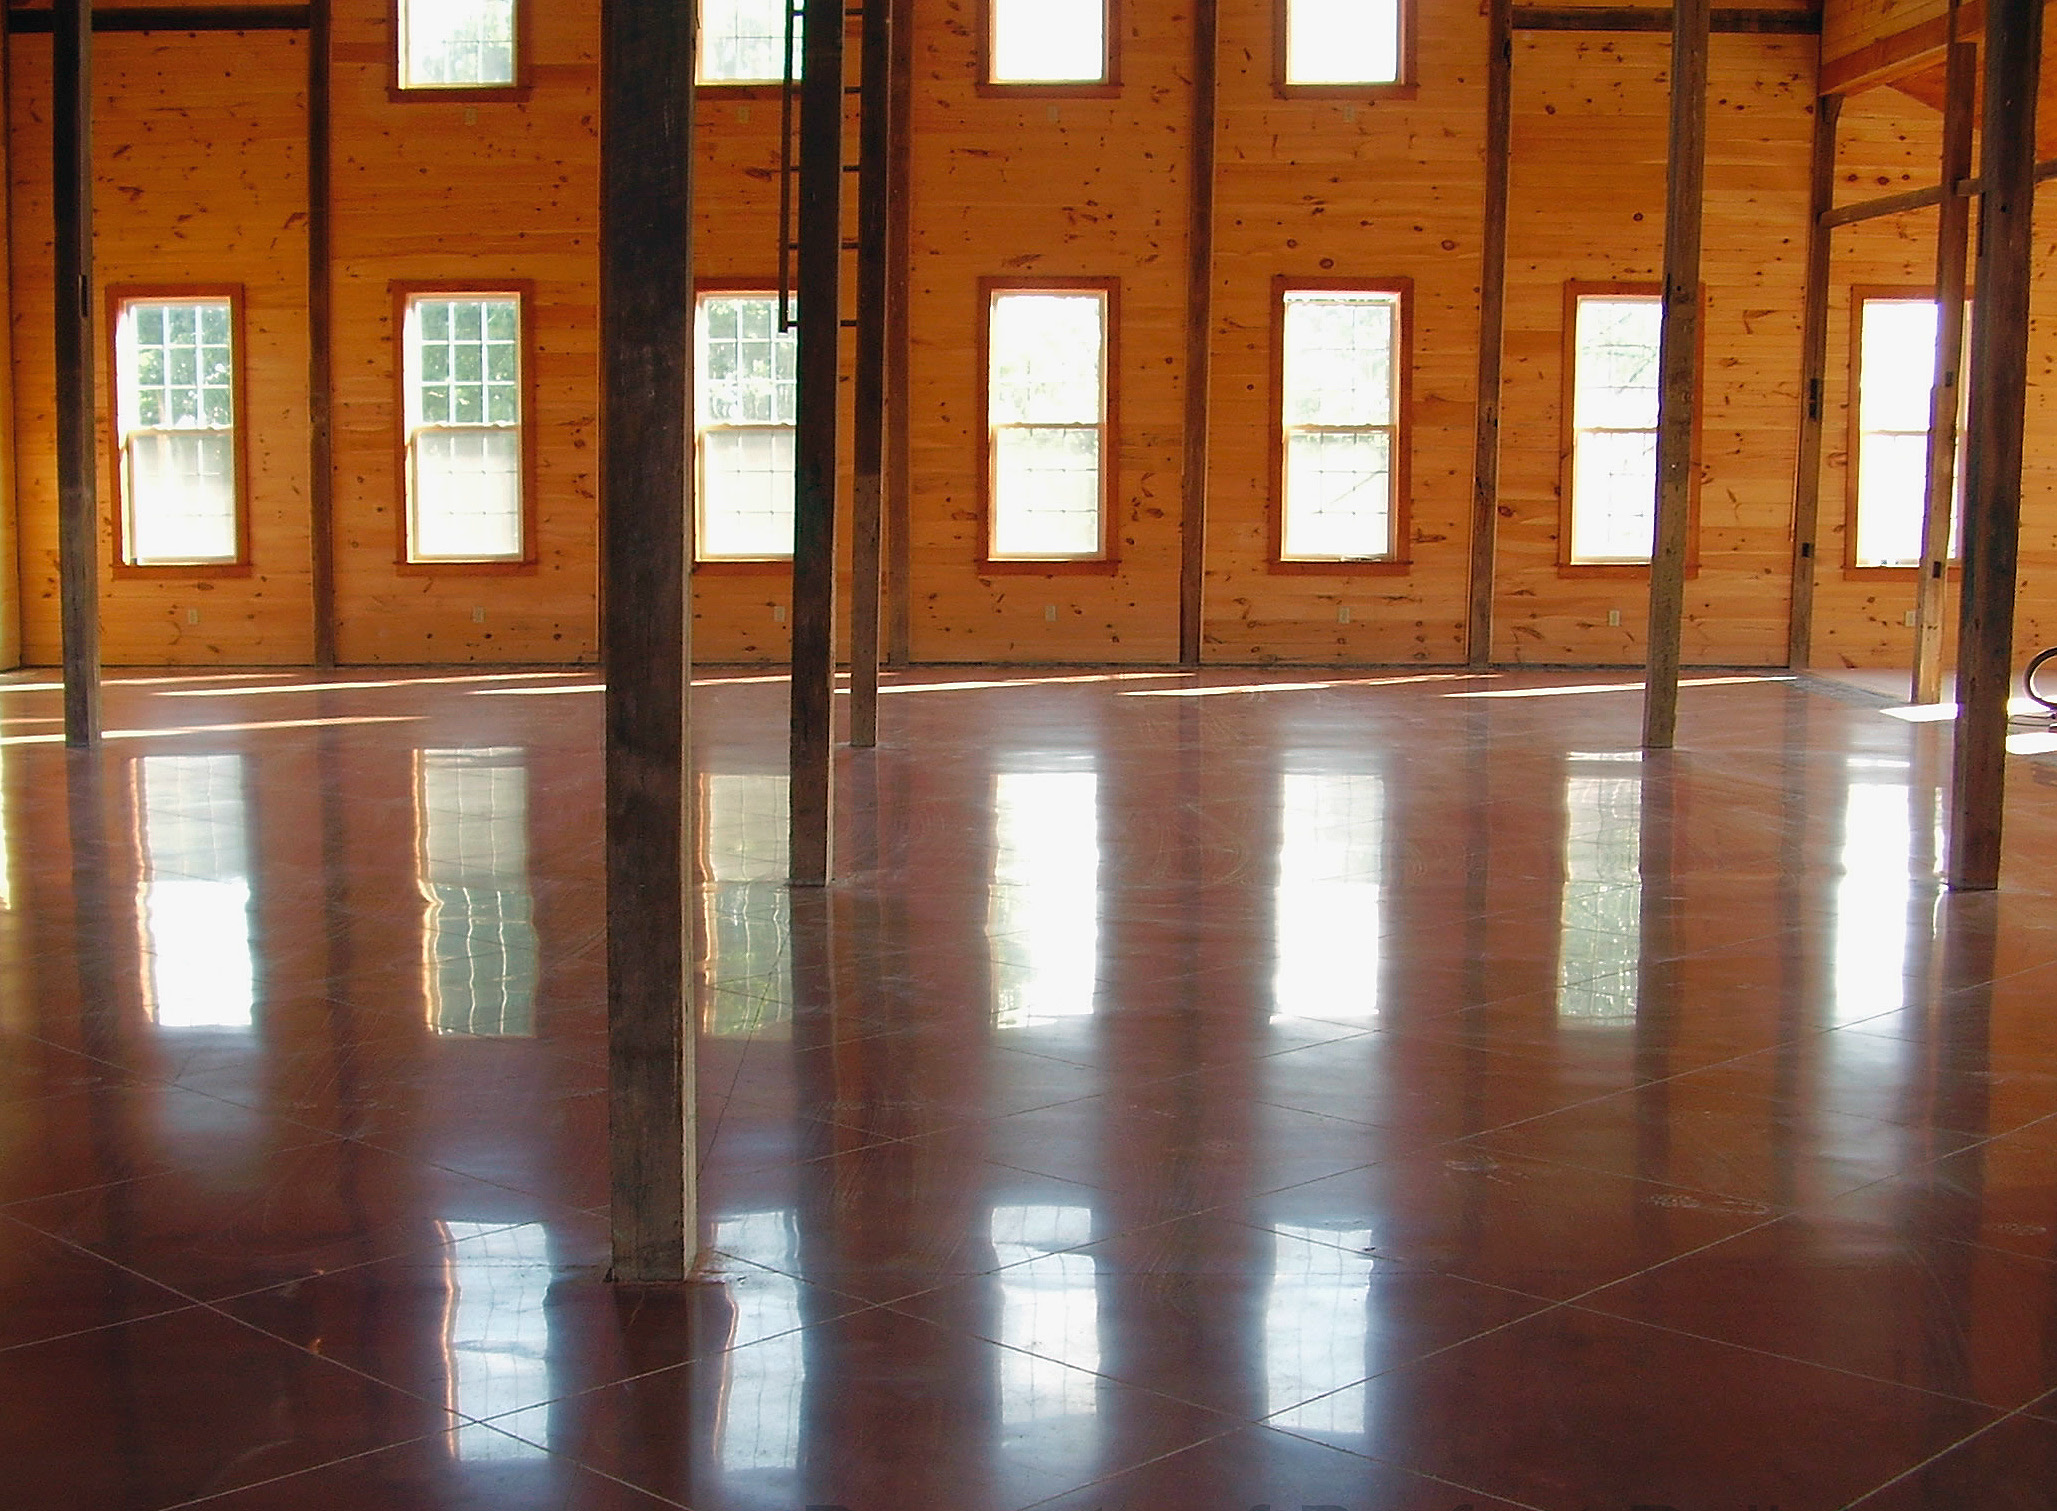 Polished concrete was used for more than 5,000 square feet of the nearly 7,800-square-foot facility. The floors are colored Indian red, with 2-foot by 2-foot panels scored on the diagonal.